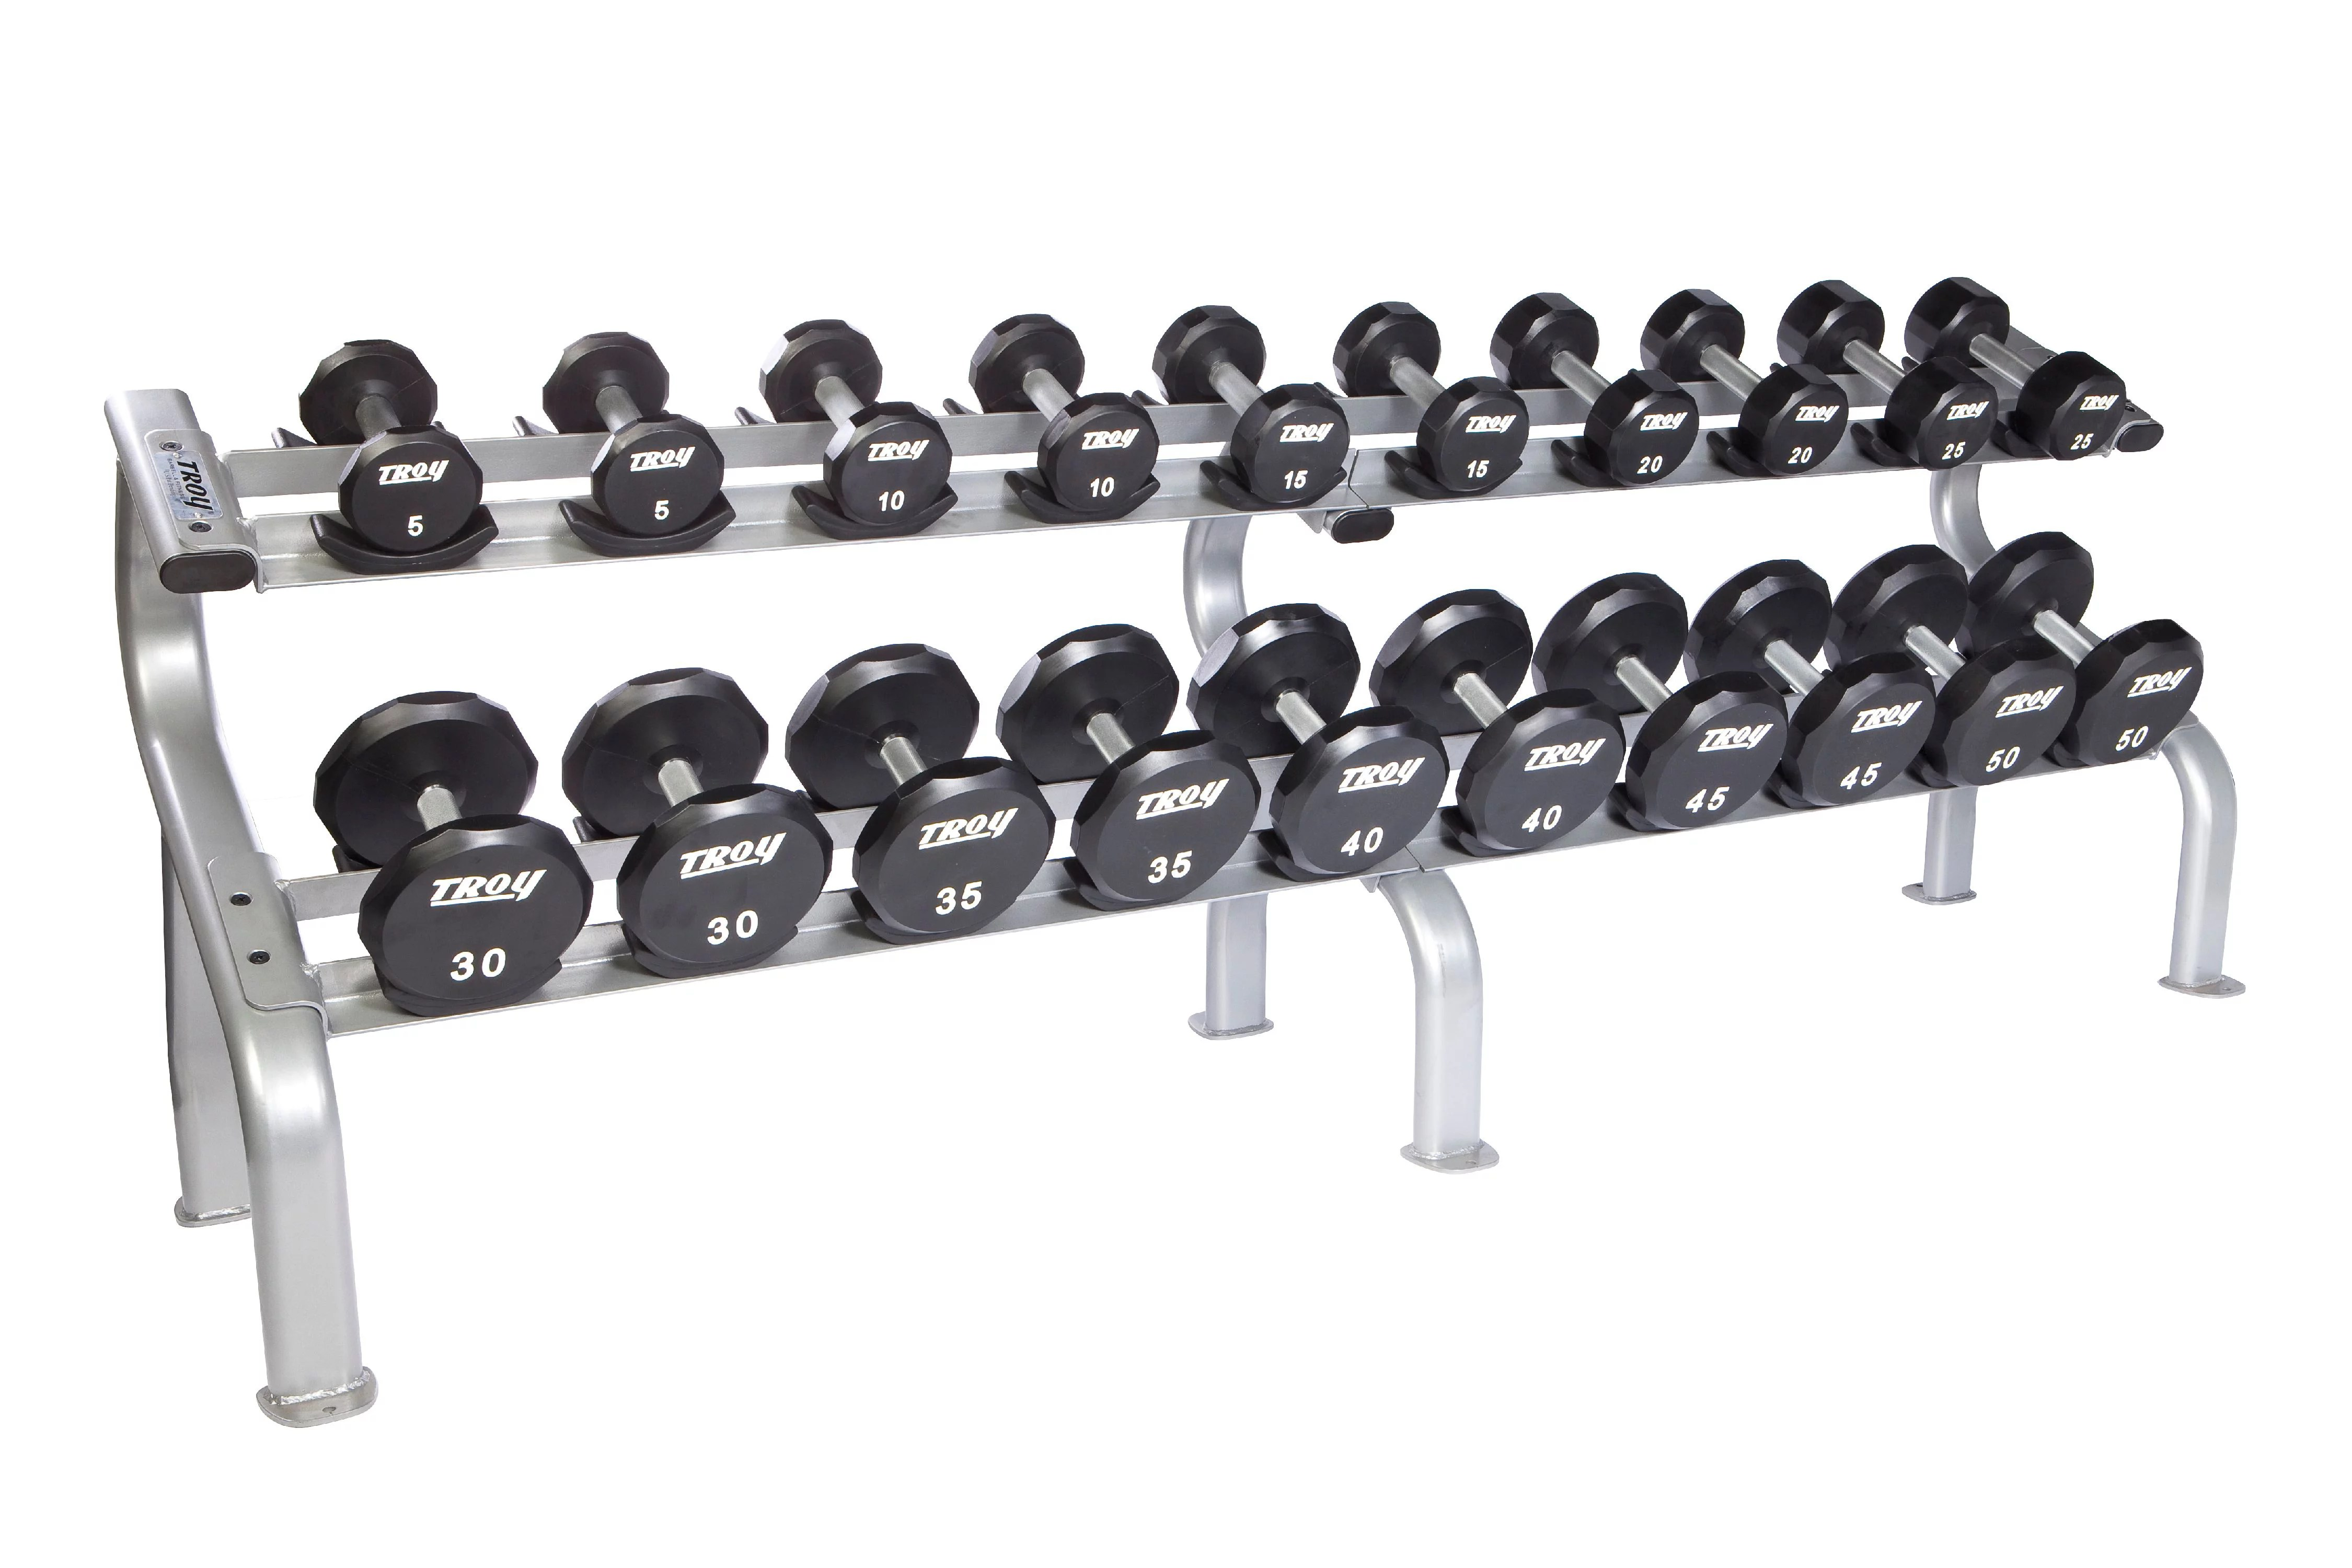 troy 5 50 lbs 10 pairs urethane dumbbell weight set w rack flat 12 sided head commercial gym quality by troy barbell walmart com